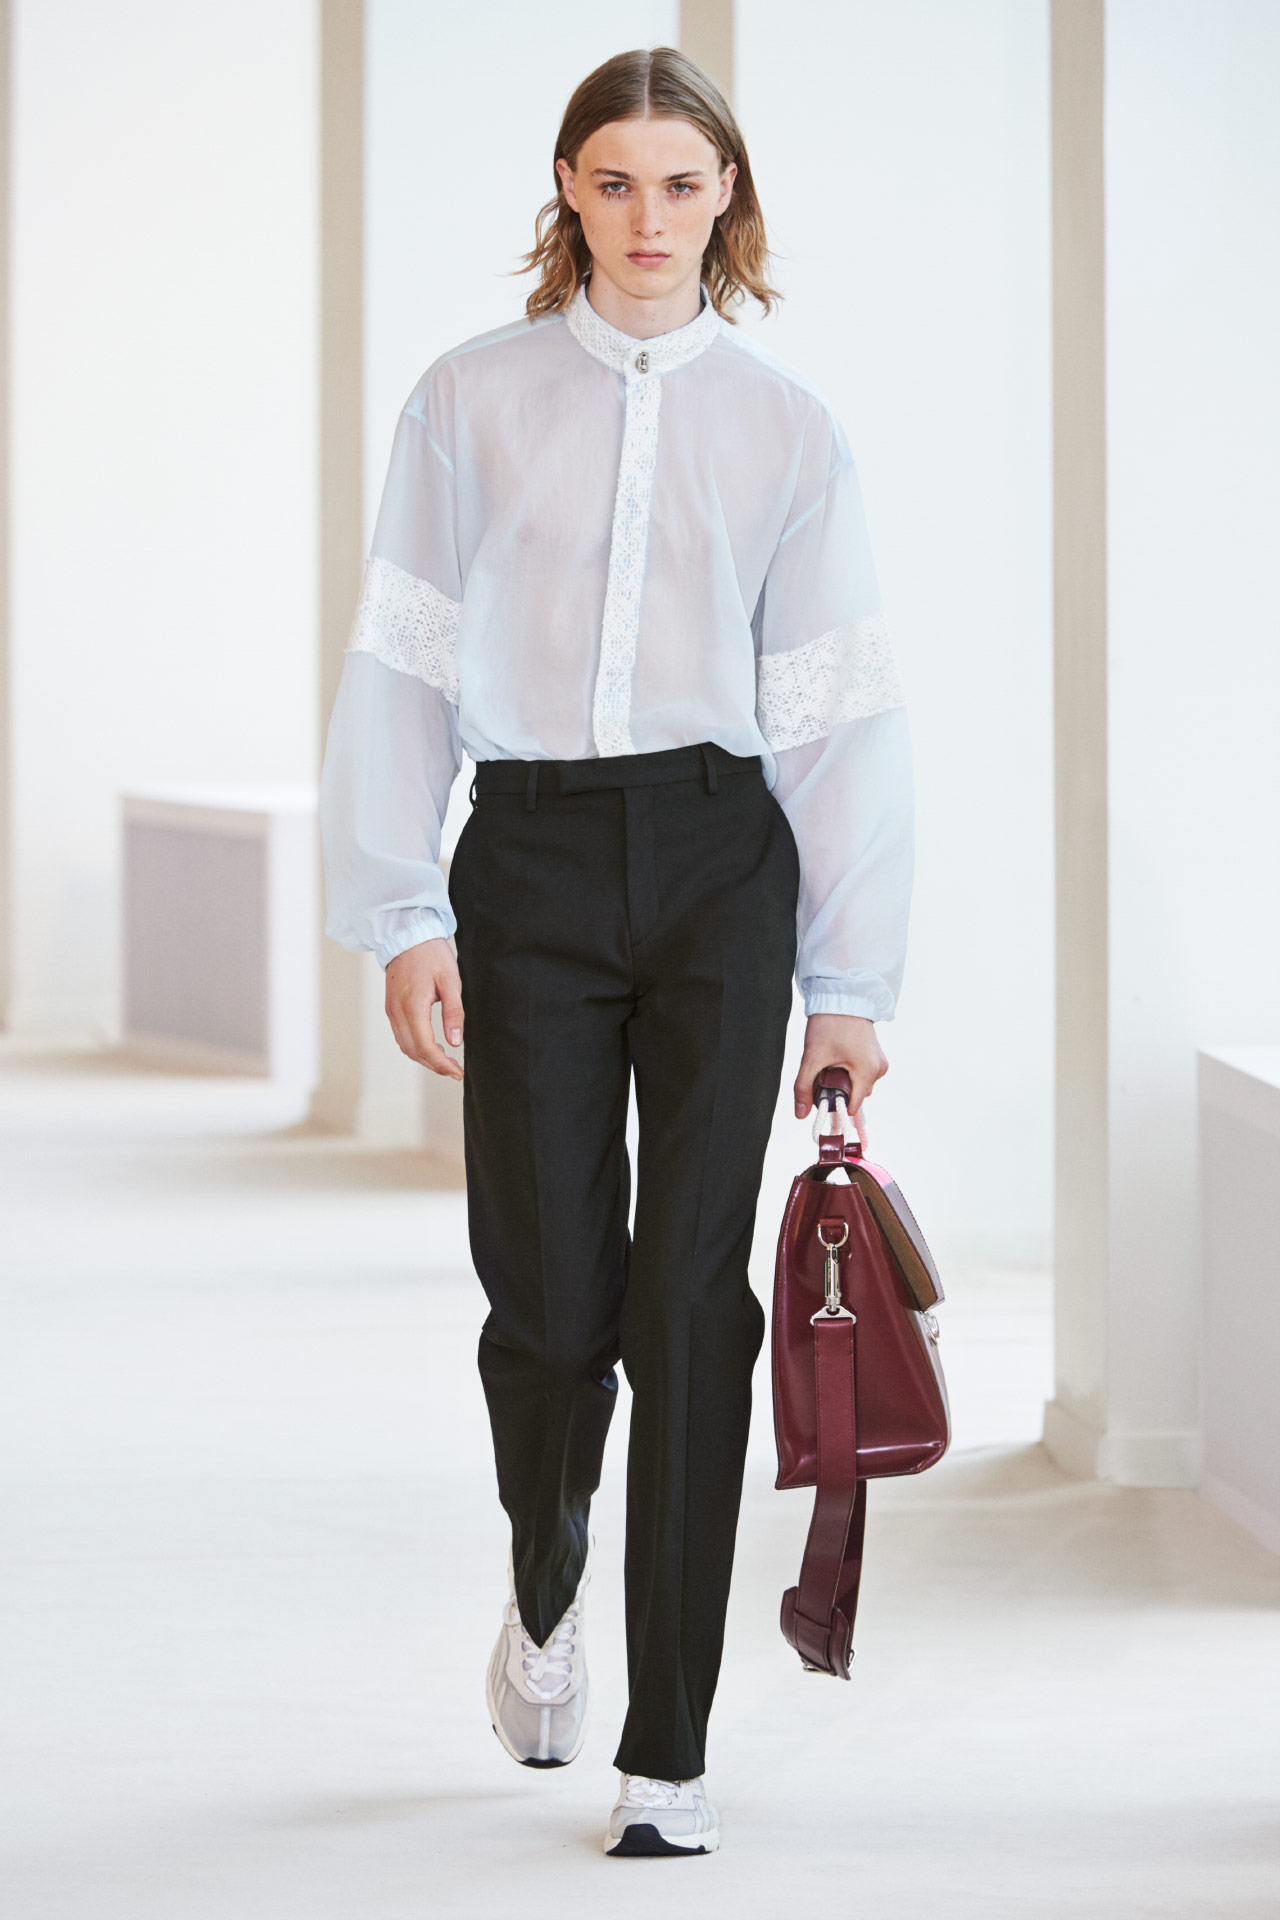 Look Spring/Summer, image 3